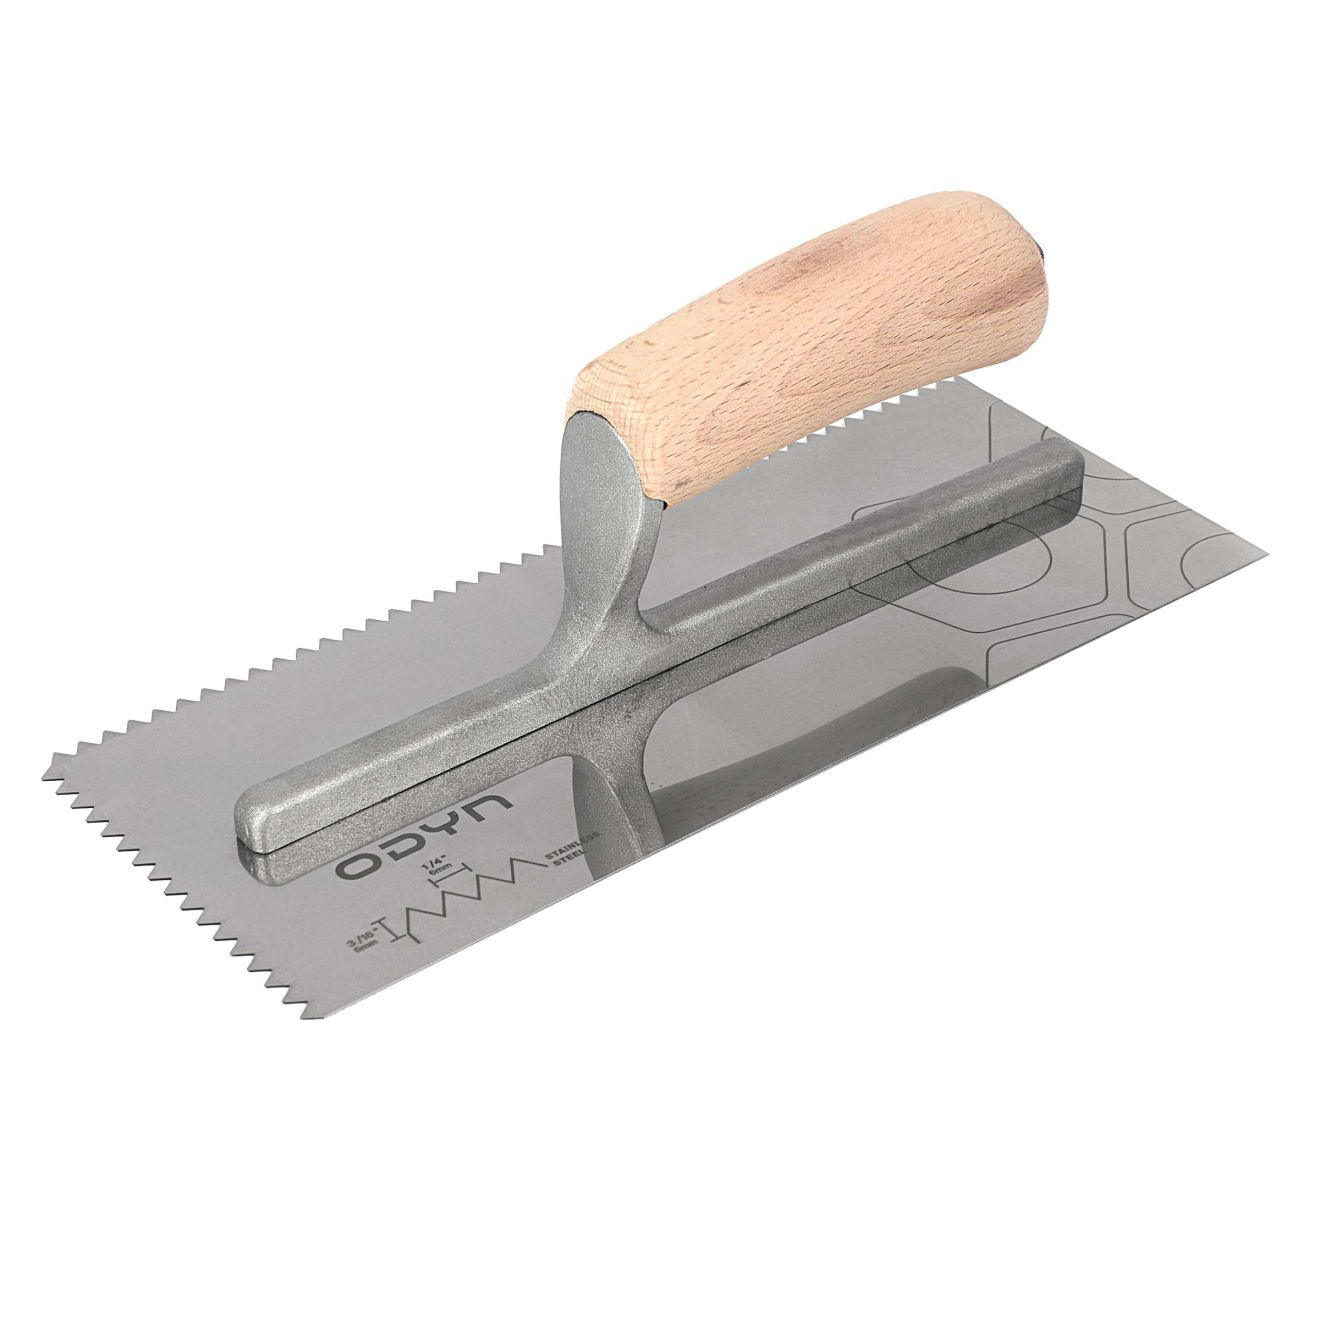 Odyn 11 in. x 1/4 in. x 3/16 in. V-Notch Stainless Steel Trowel